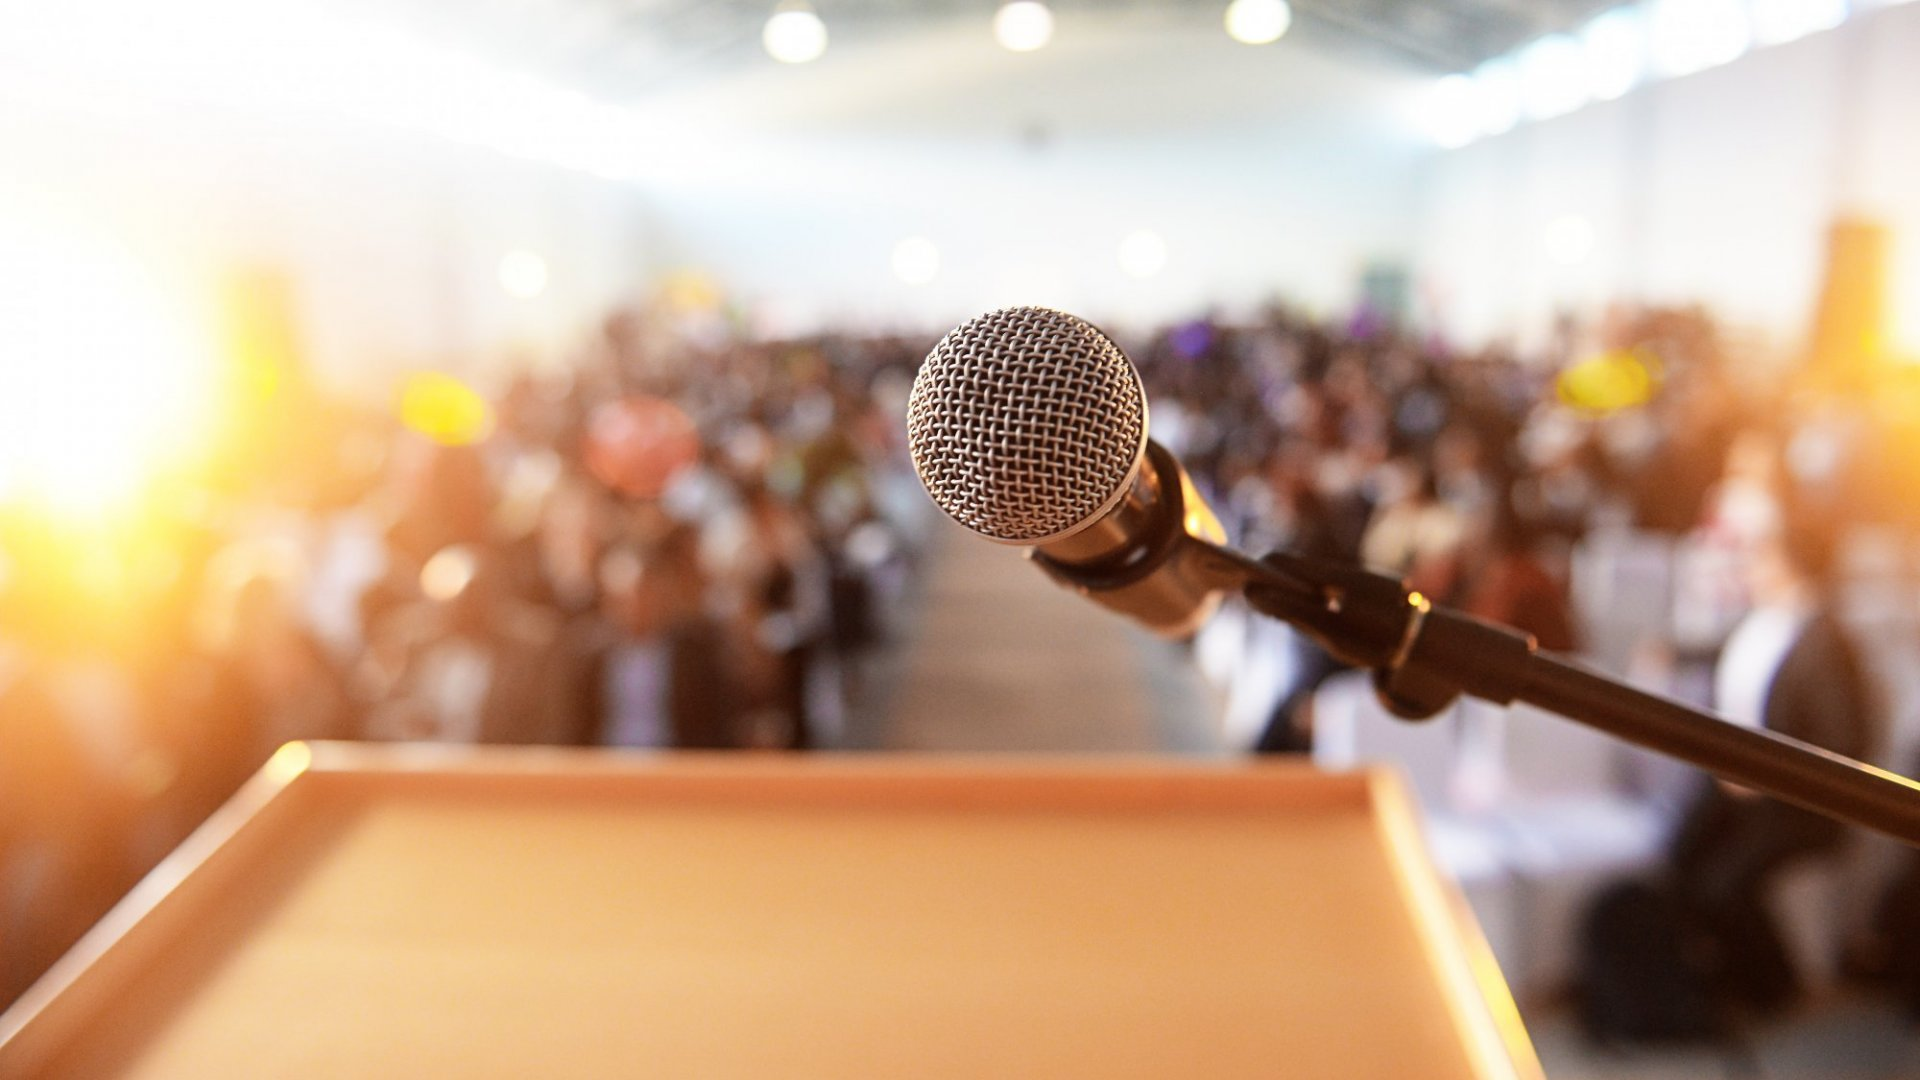 4 Steps to Conquer the Fear of Public Speaking, According to an Award-Winning Psychologist